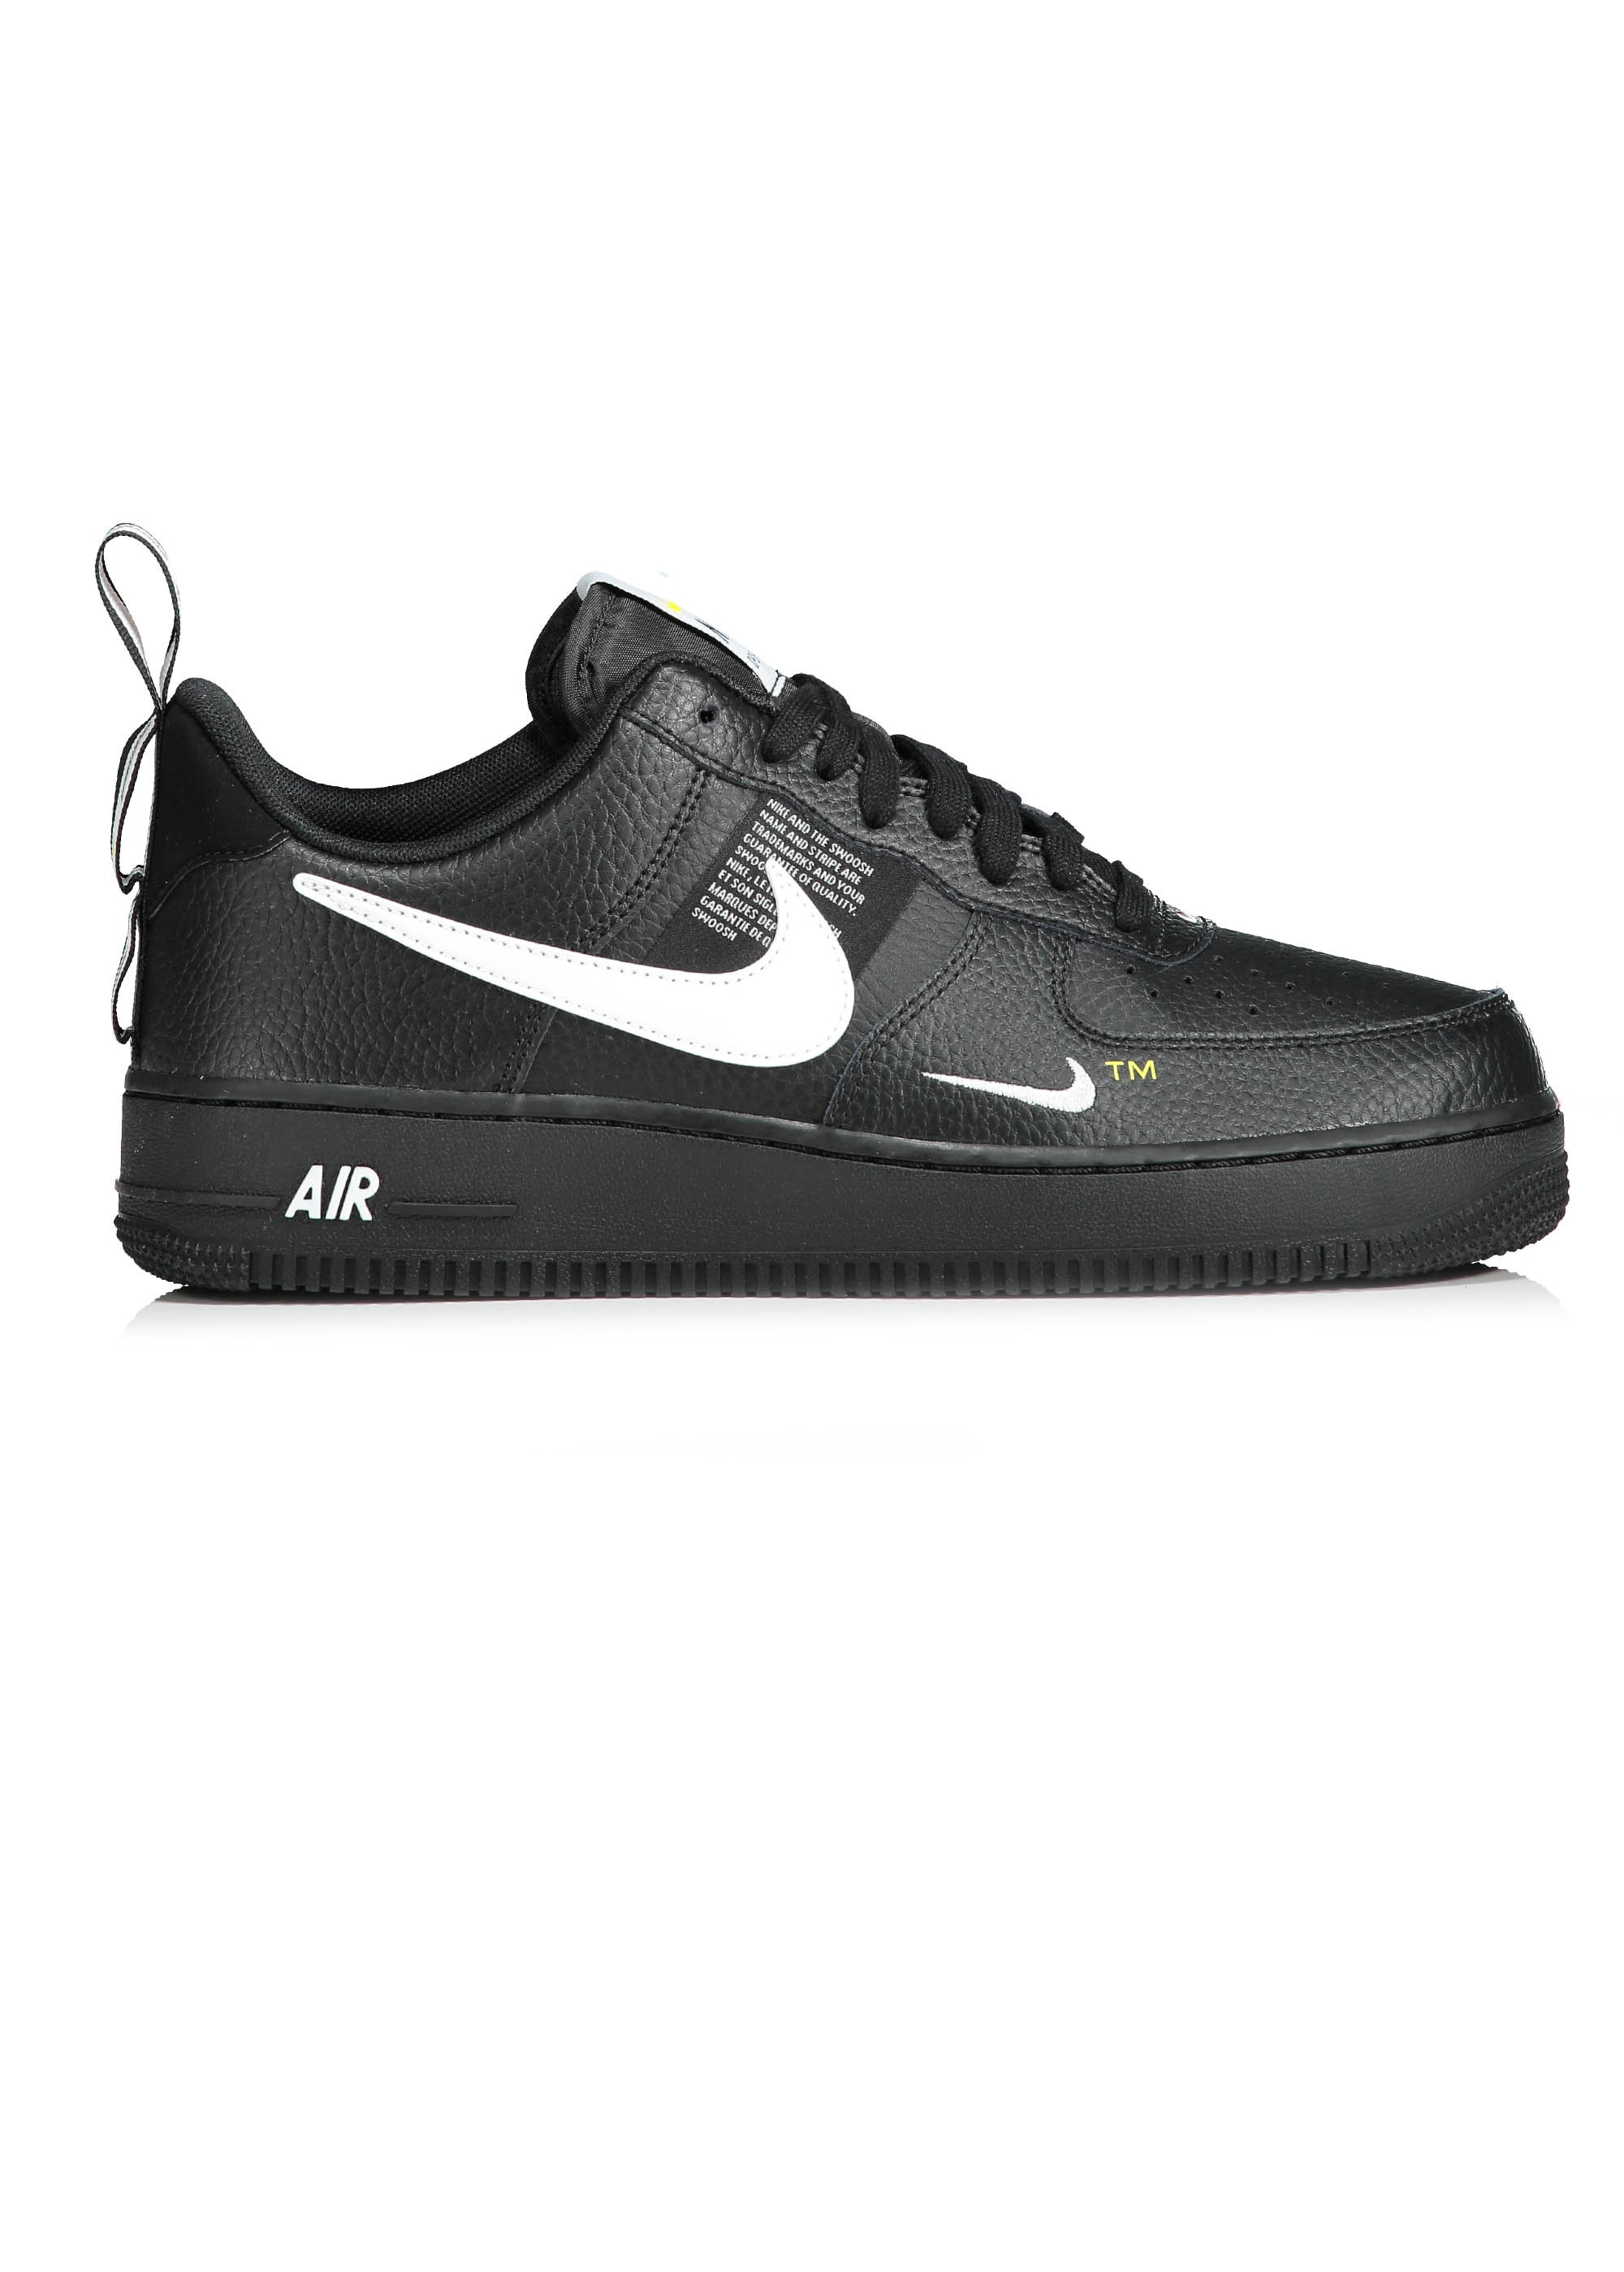 on feet shots of meet online here Nike Footwear Air Force 1 07 LV8 Utility - Black / White